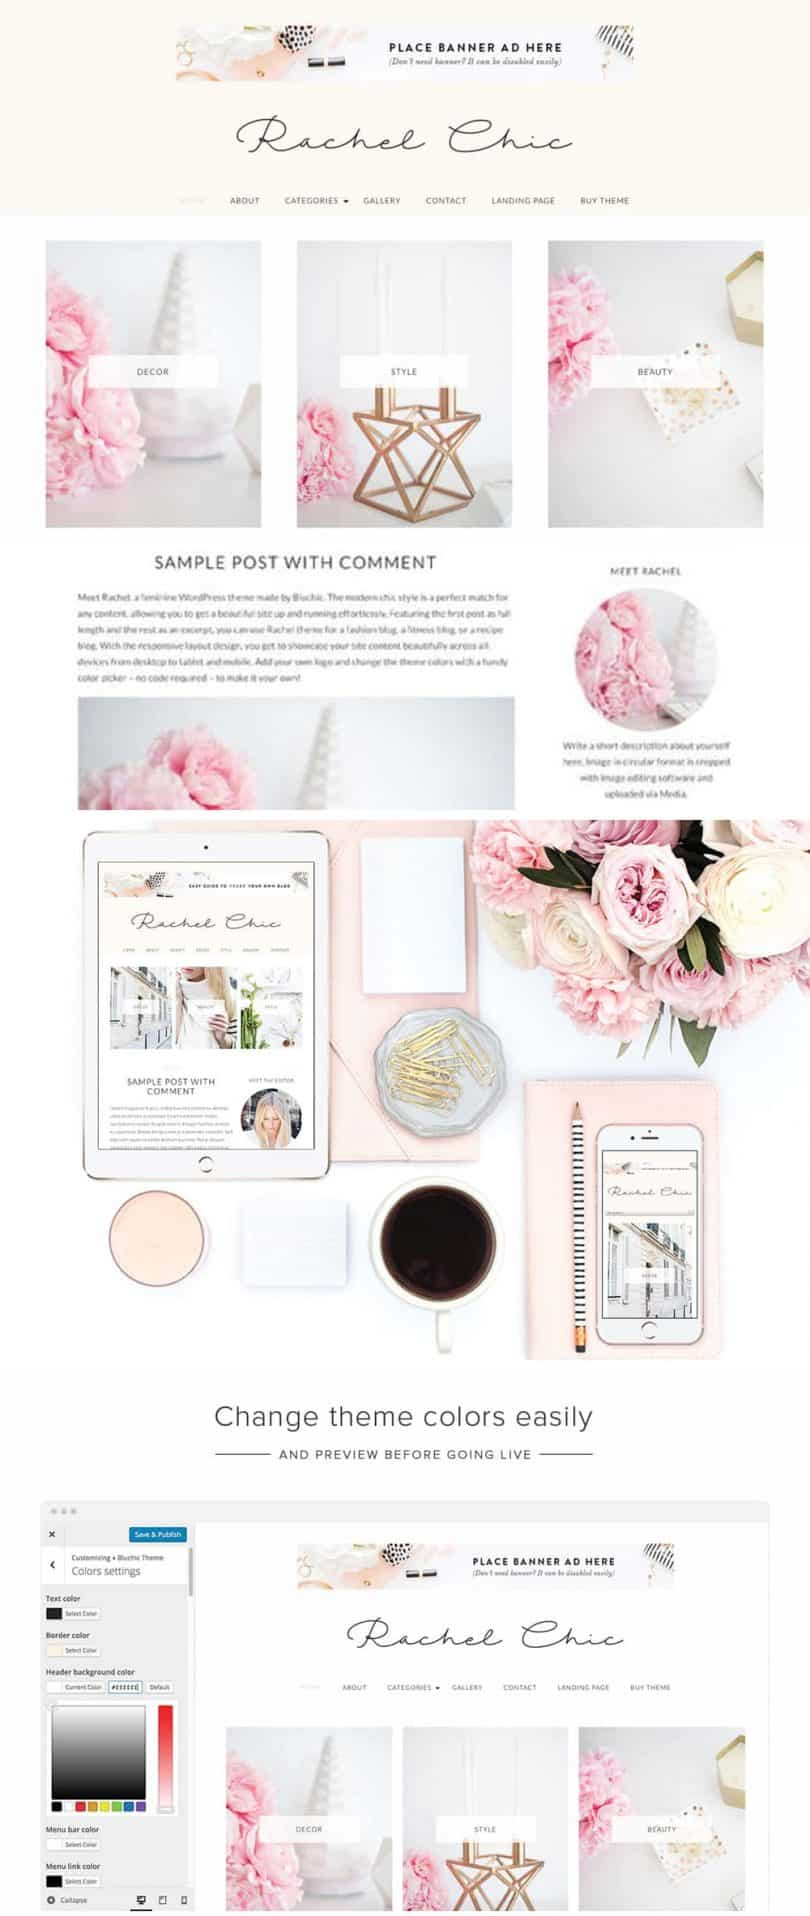 Best feminine wordpress themes for bloggers, entrepreneurs, and #girlbosses